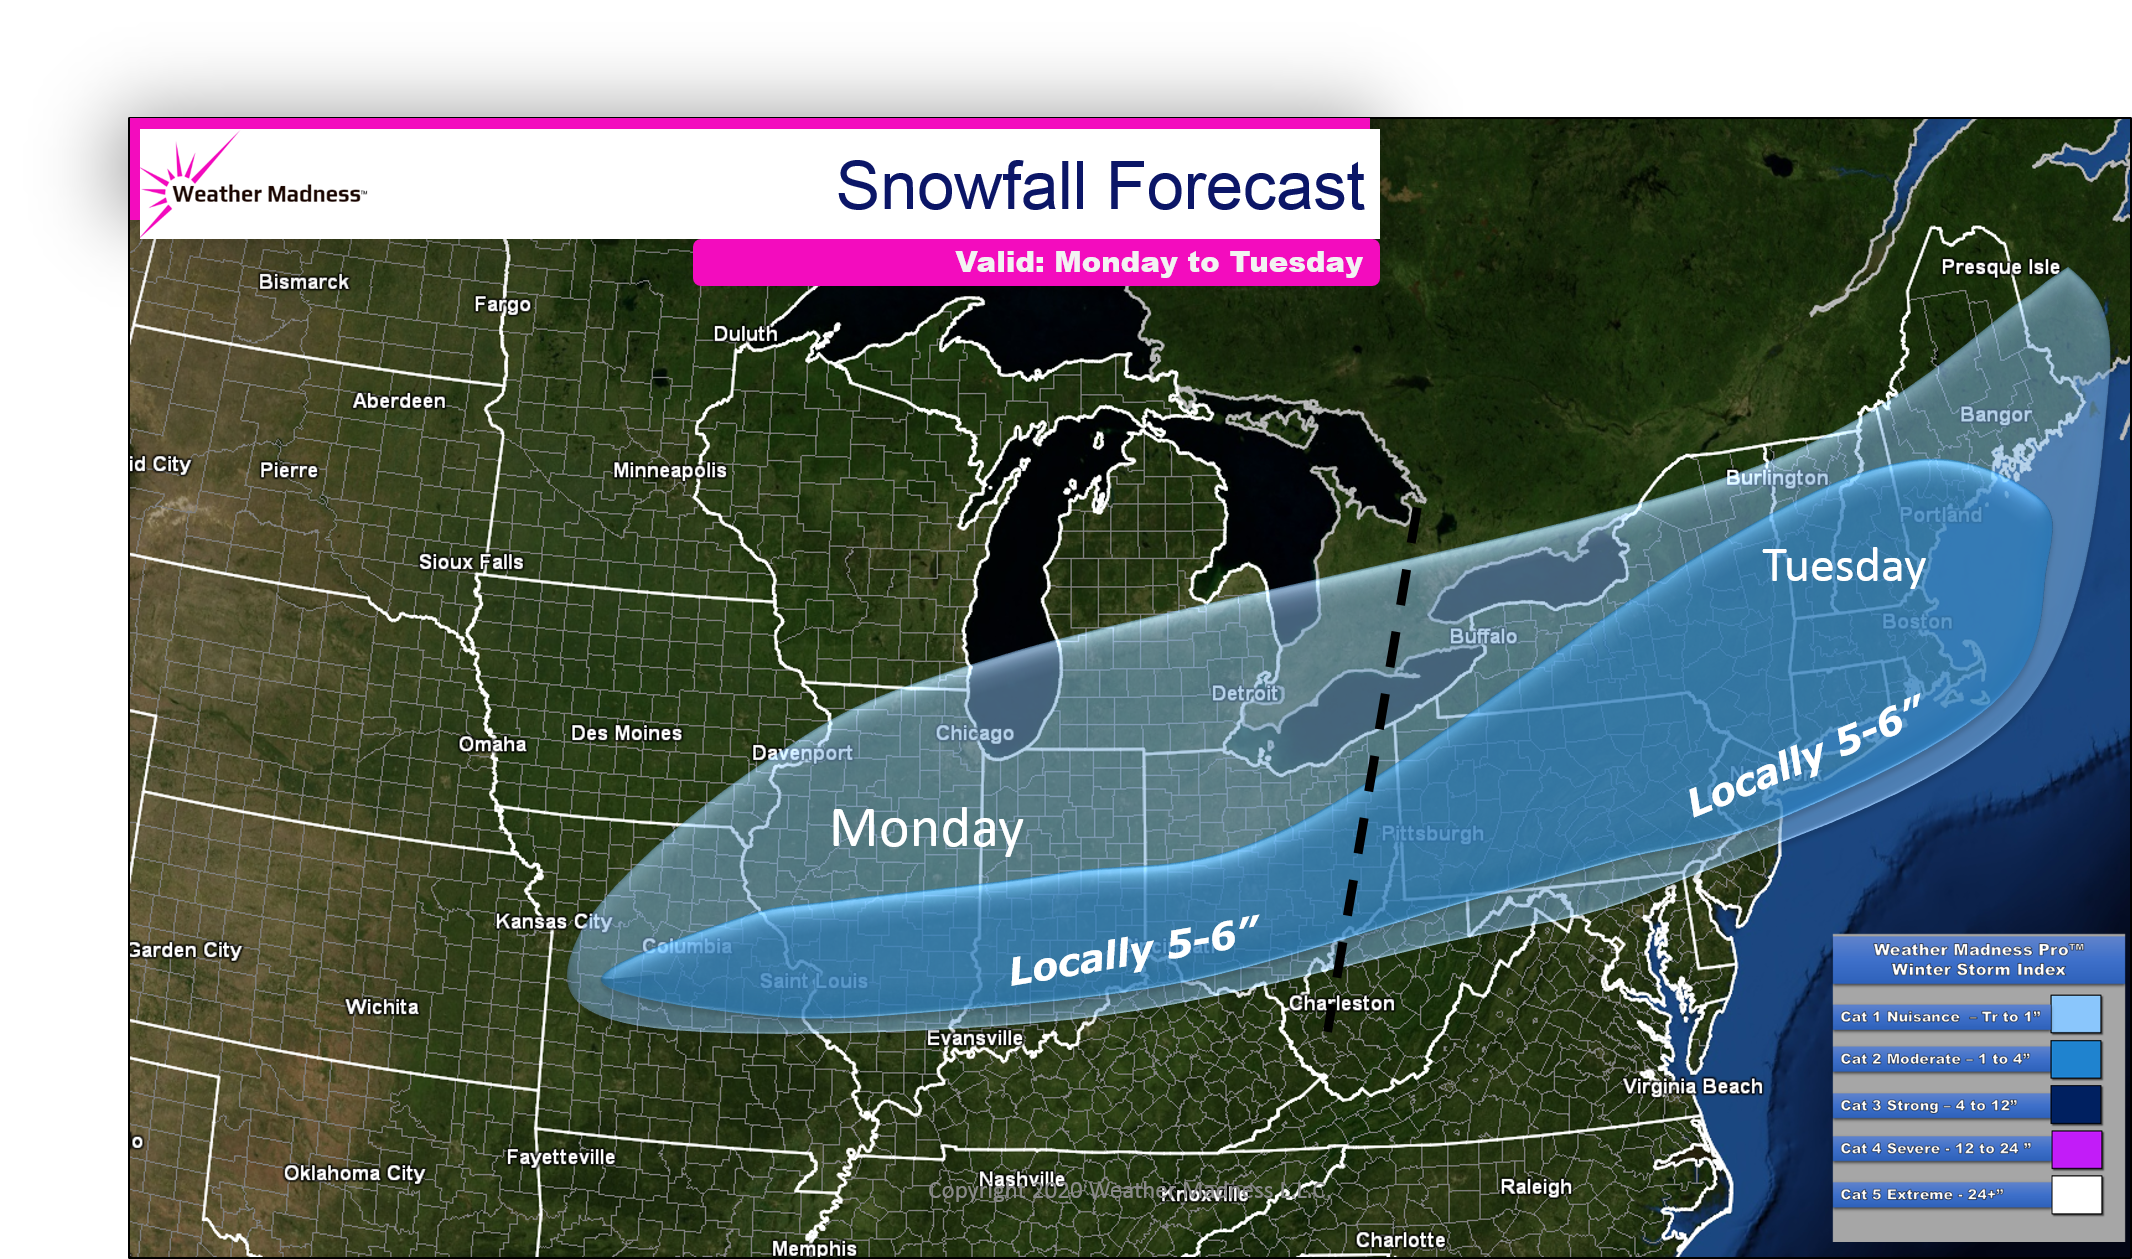 Updated Snow Map for Snow Today to Tuesday